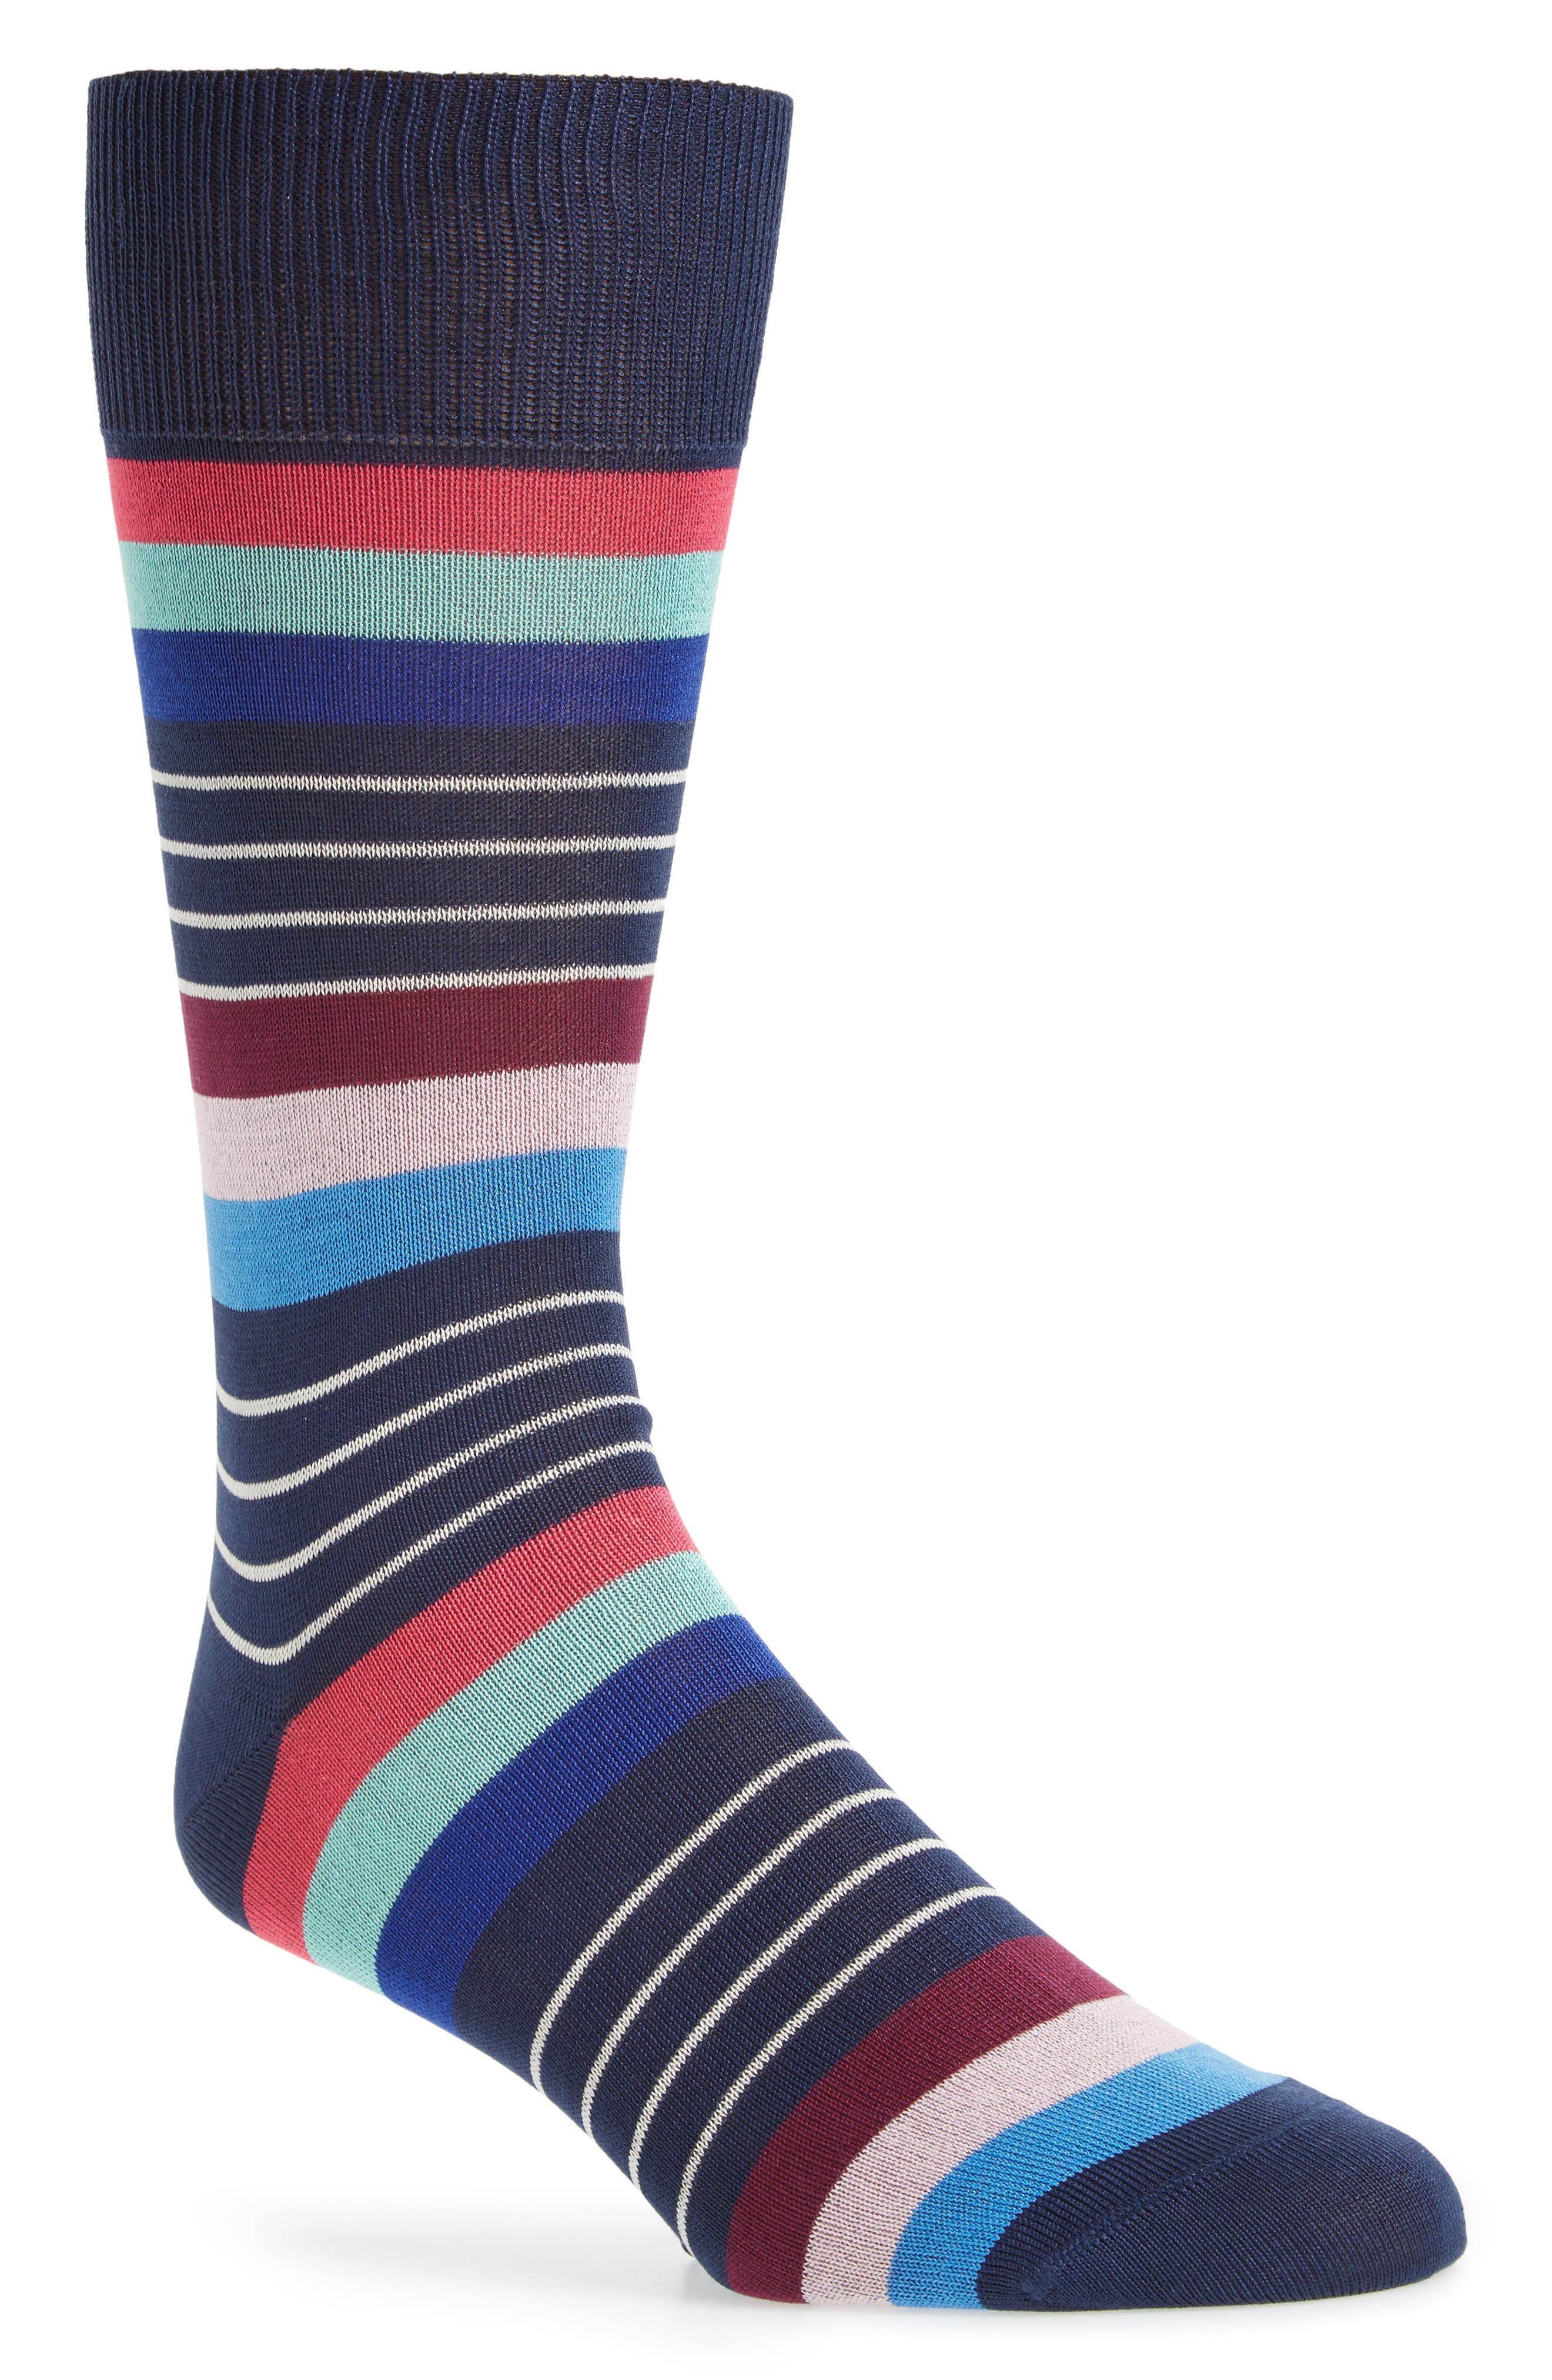 Alternate Image 1 Selected - Paul Smith Kel Stripe Crew Socks